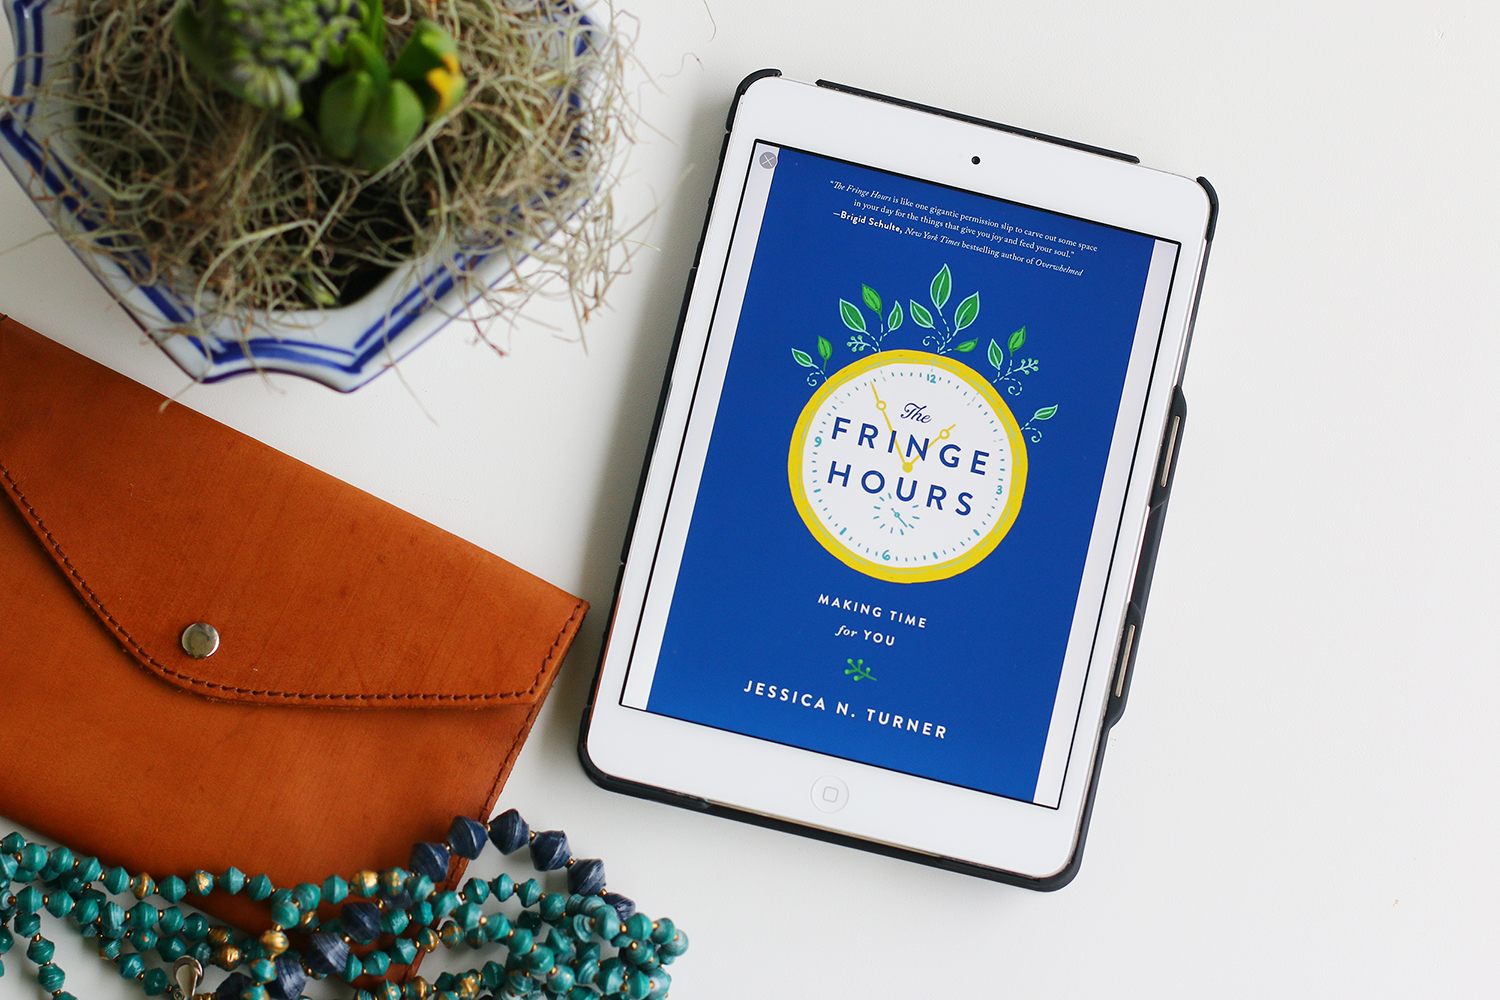 Get The Fringe Hours eBook for just $0.99!